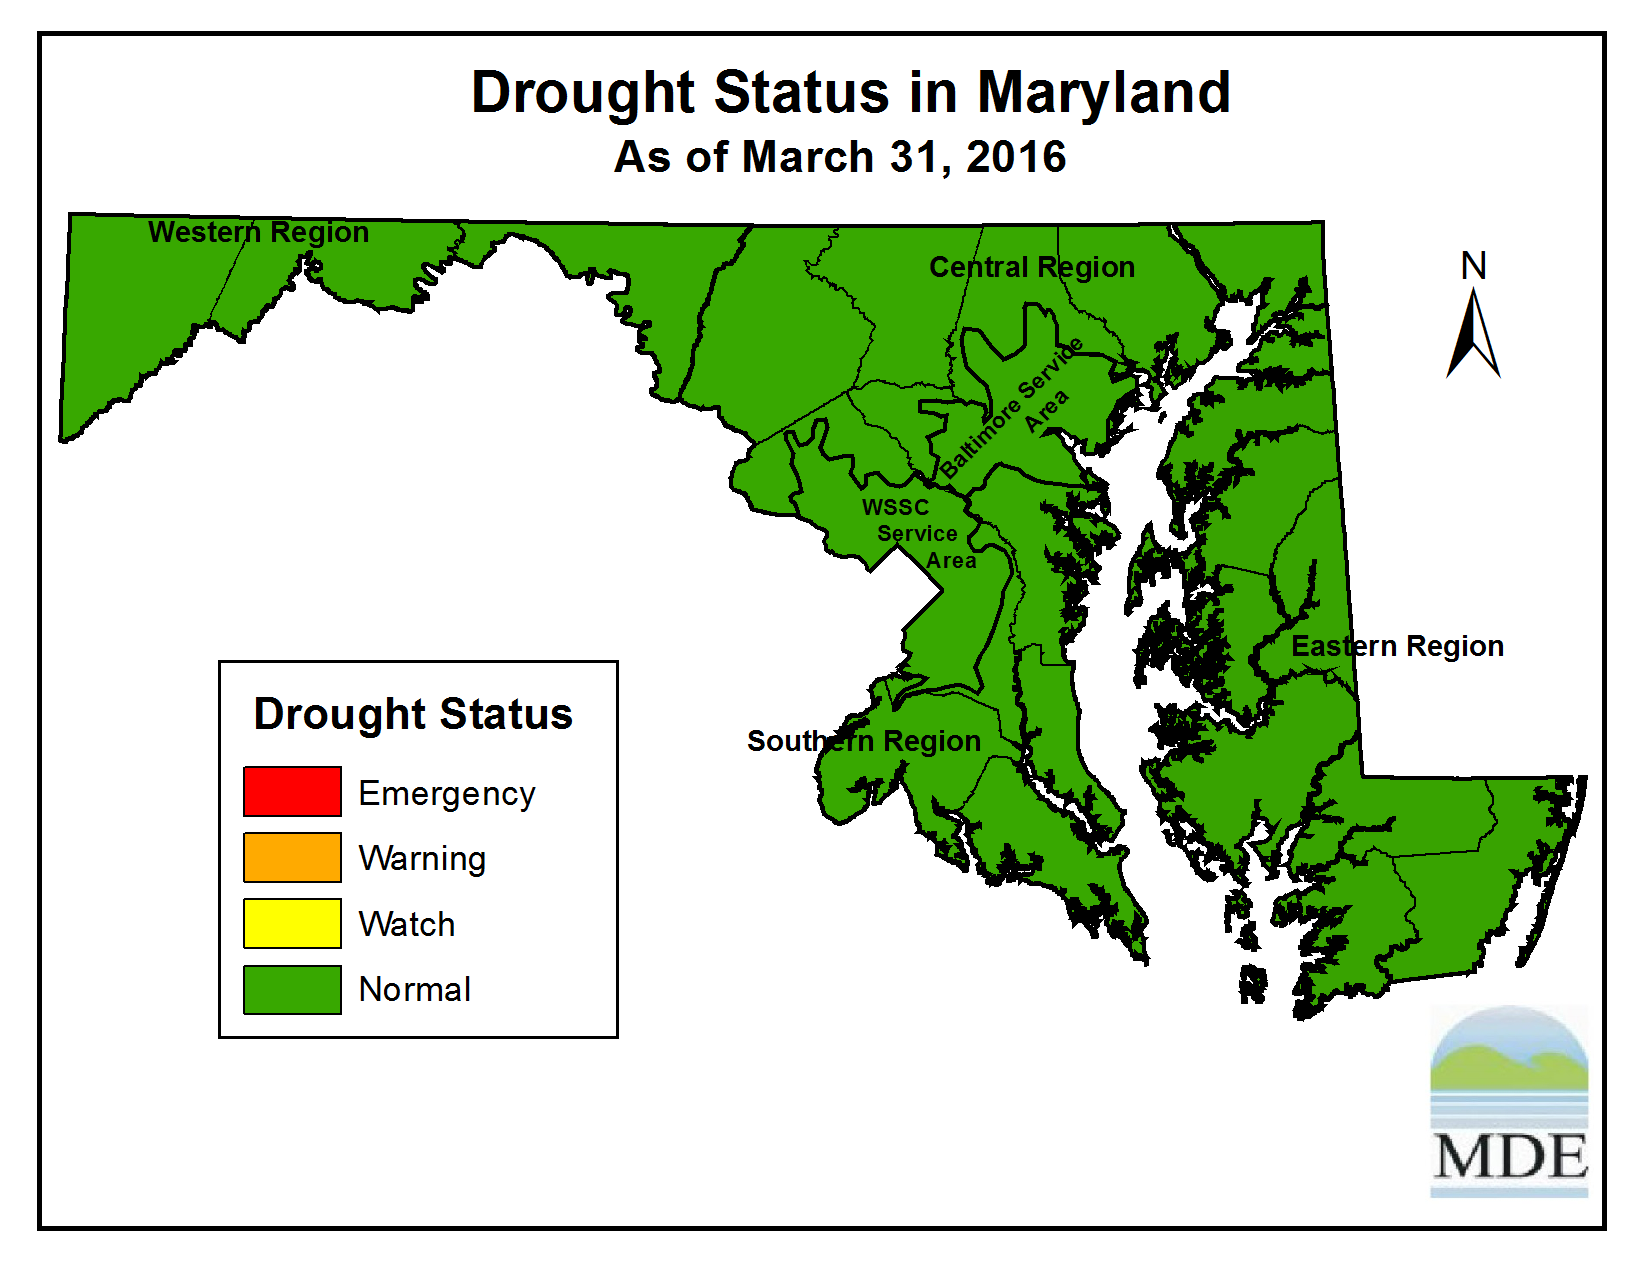 Drought Status as of March 31, 2016